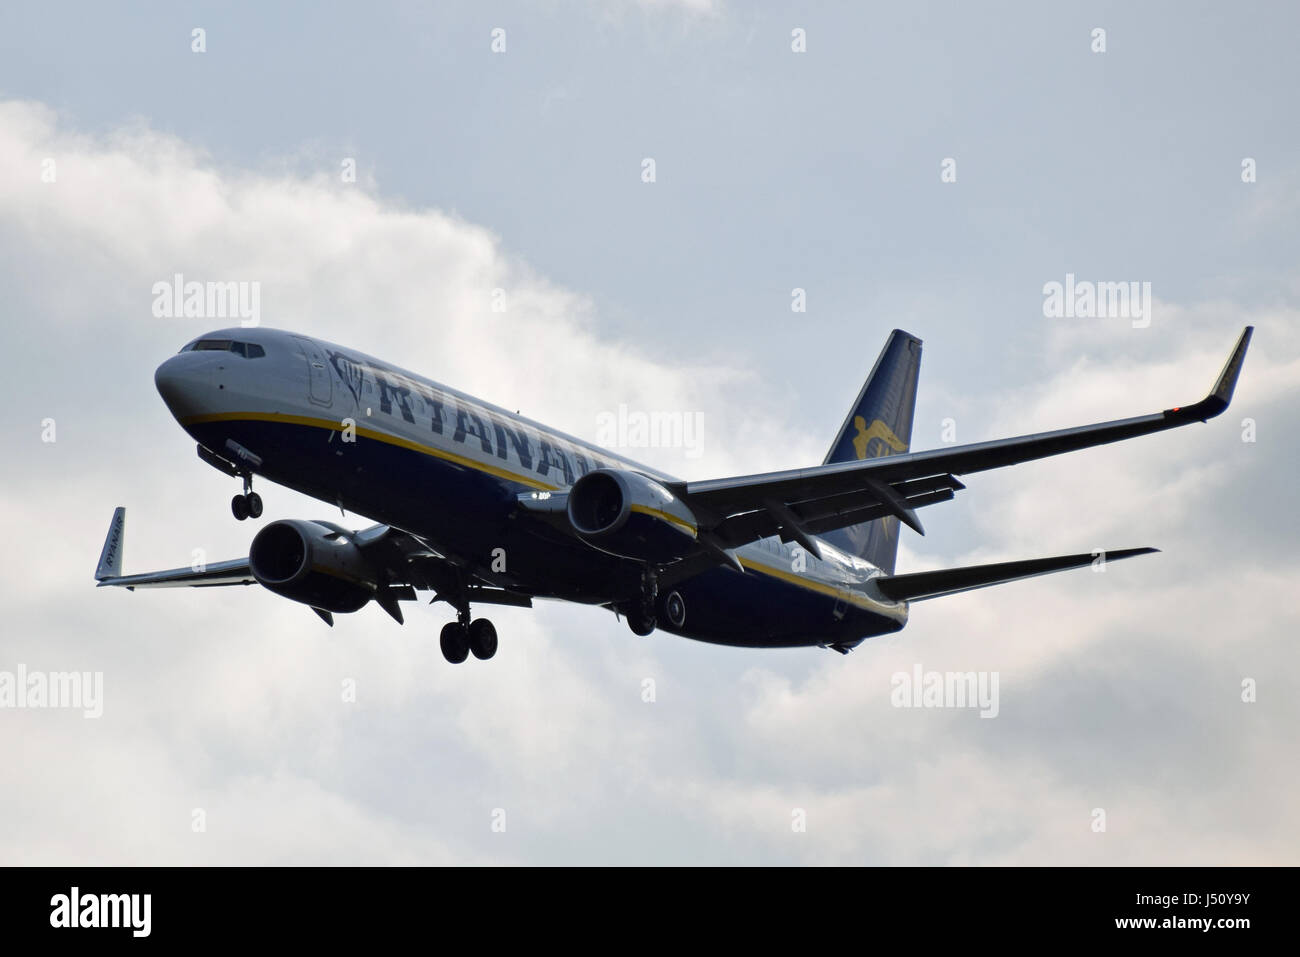 EI-FZJ Ryanair Boeing 737-800 - cn 44788 / 6359 on final approach to LGW London Gatwick airport - Stock Image